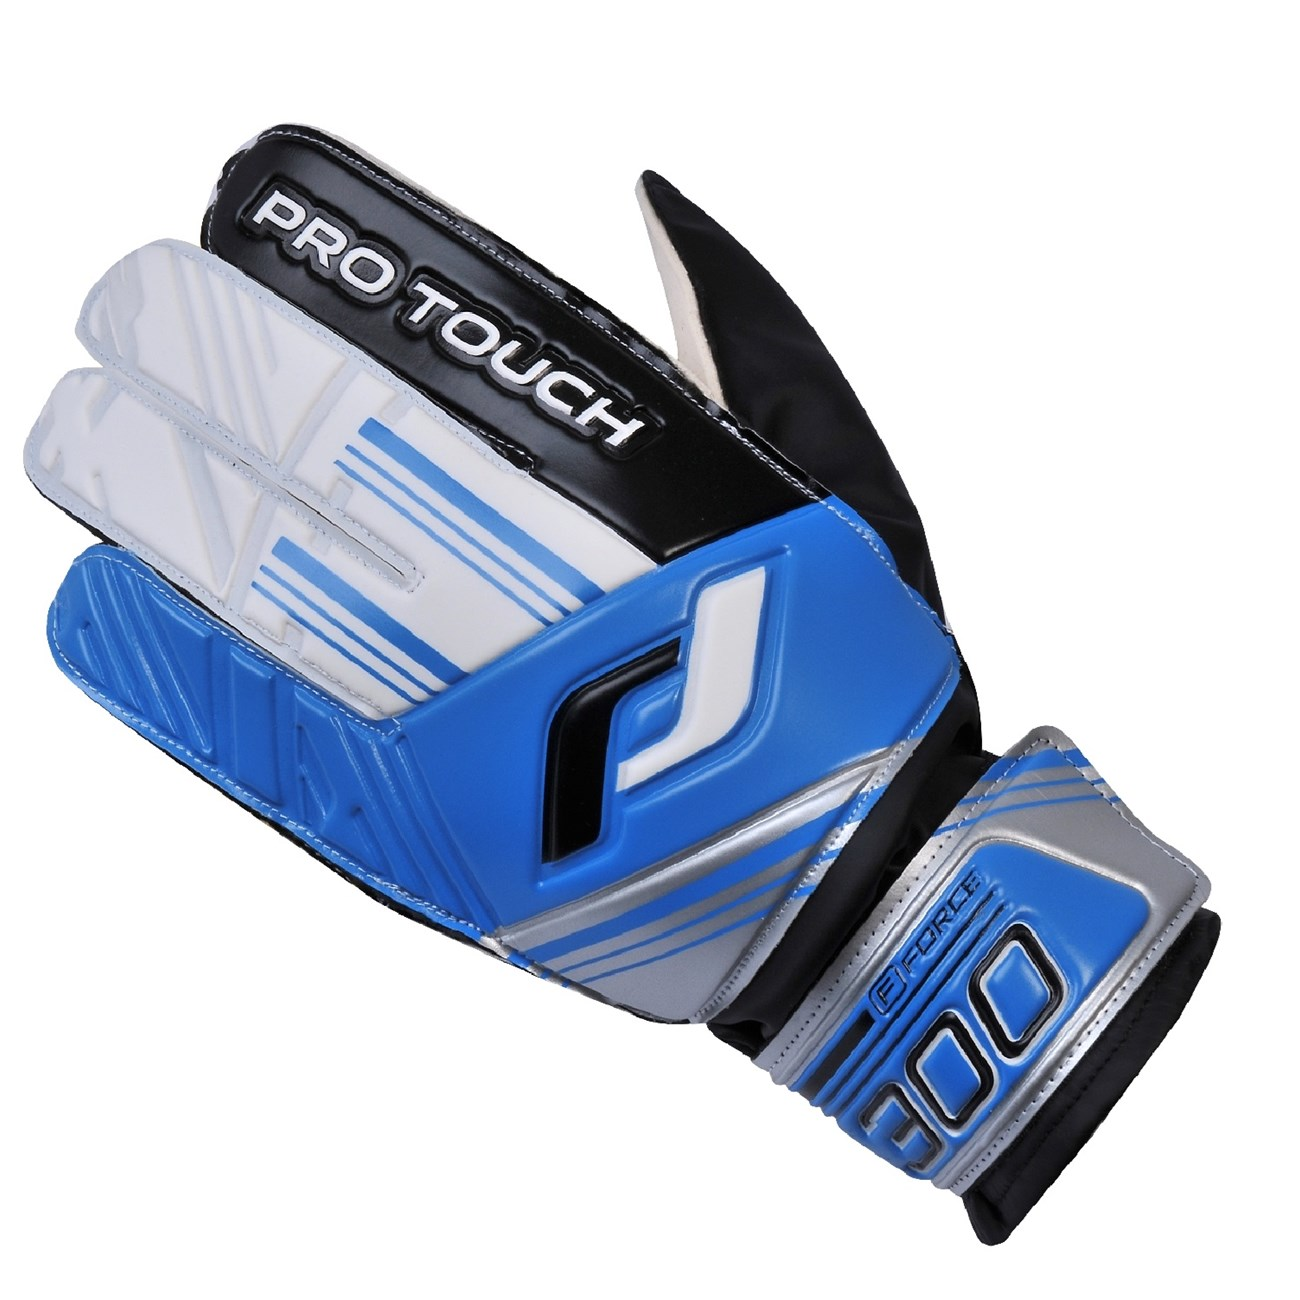 PRO TOUCH FORCE 300 AG 185544 - INTERSPORT